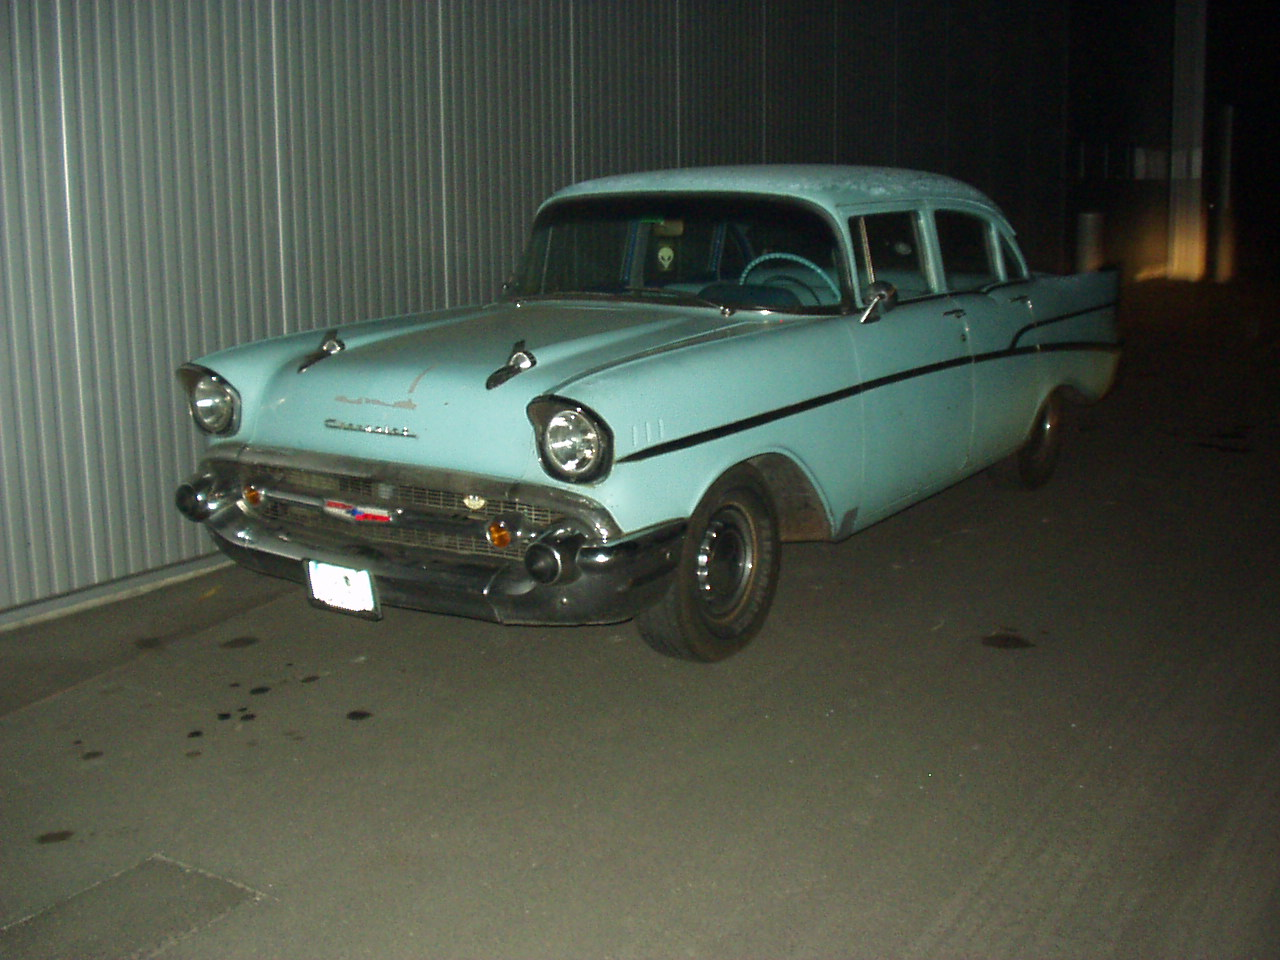 Chevy 57 Two-Ten beim Kauf 2004